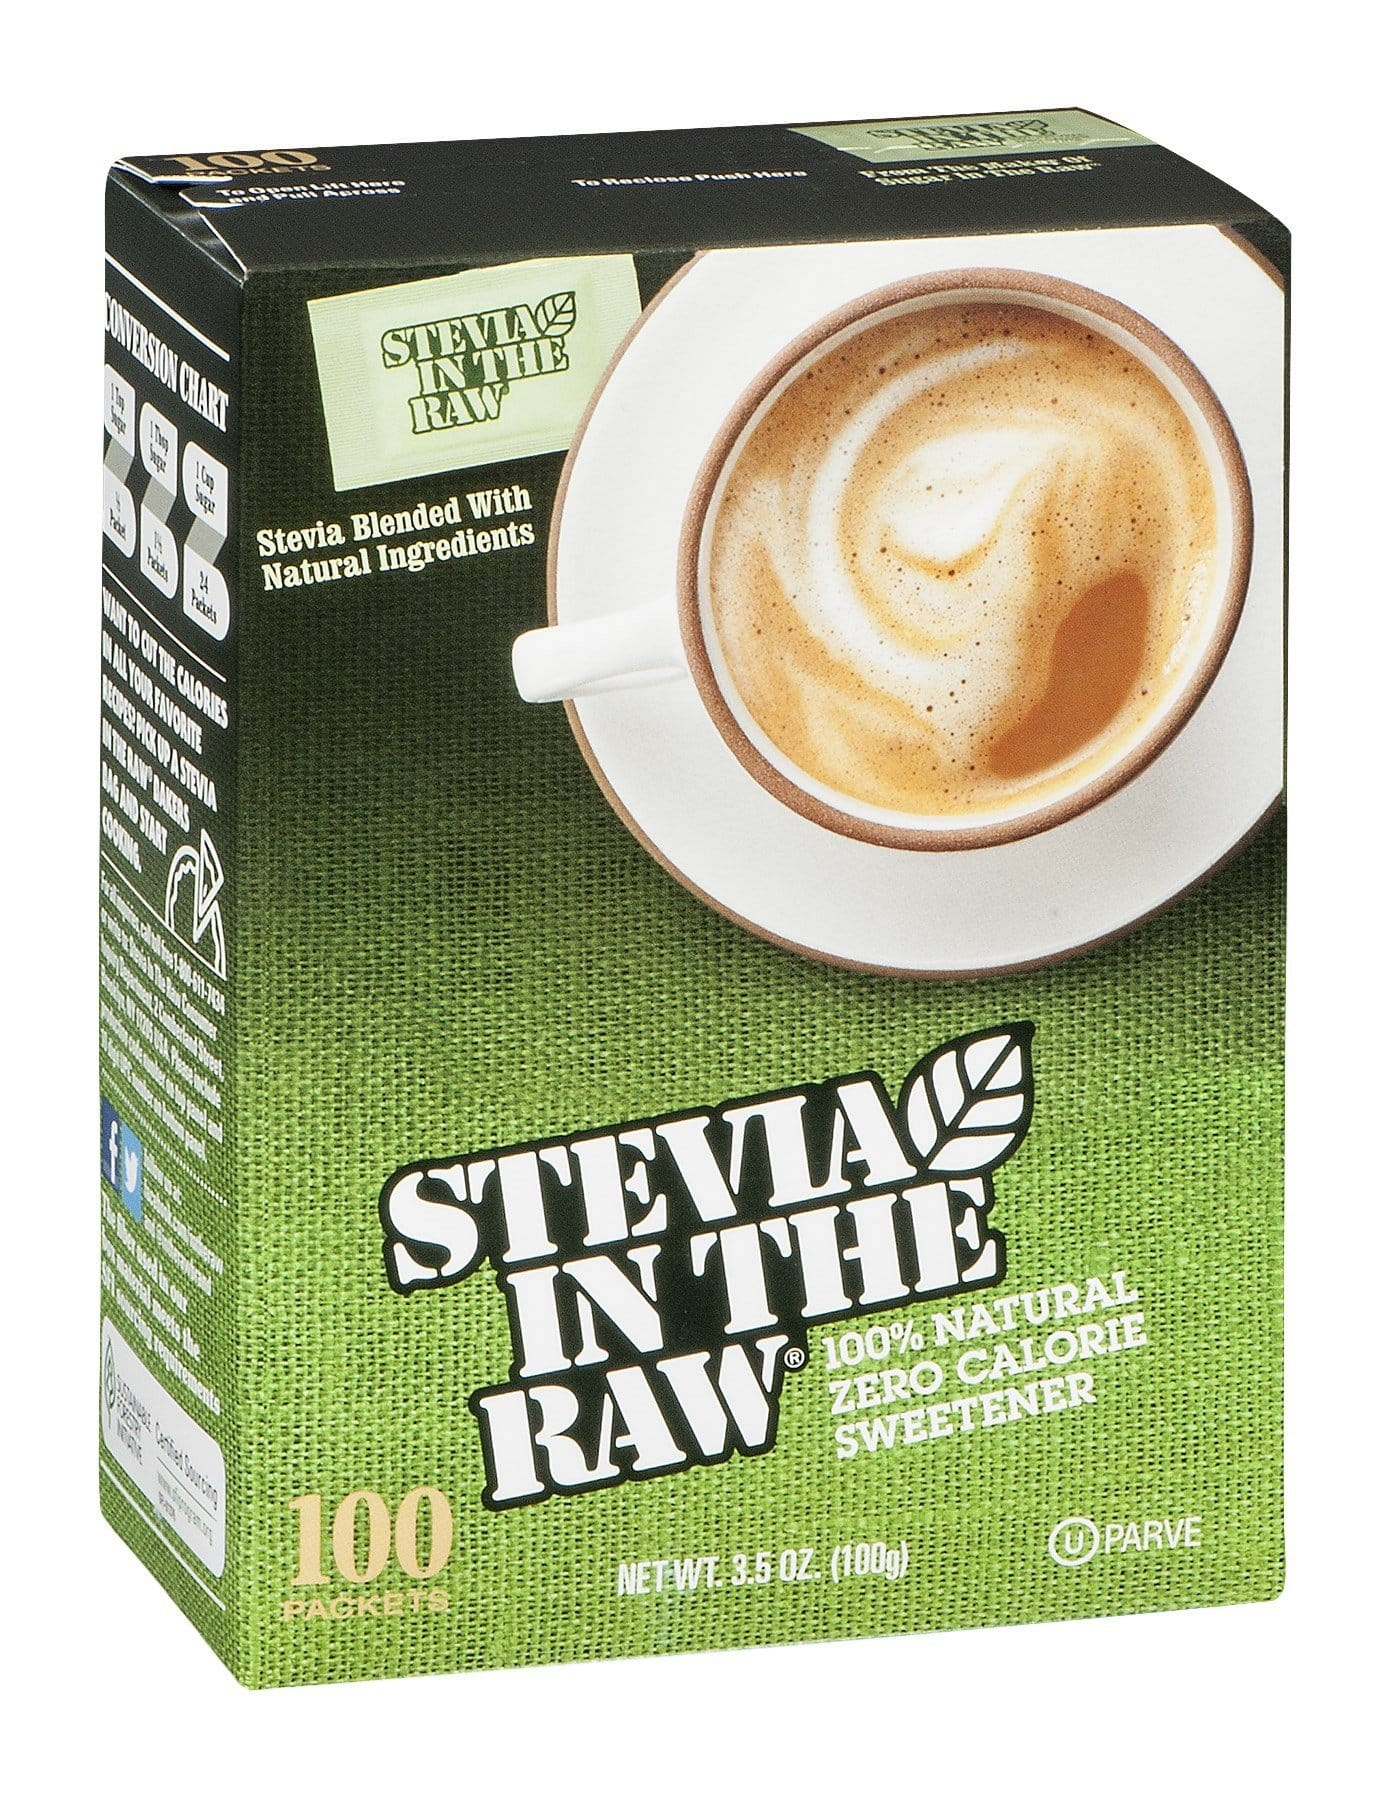 Stevia In The Raw Sugar Substitute, 2.64 Ounce Jar $4.70 w/ S&S + Free S/H